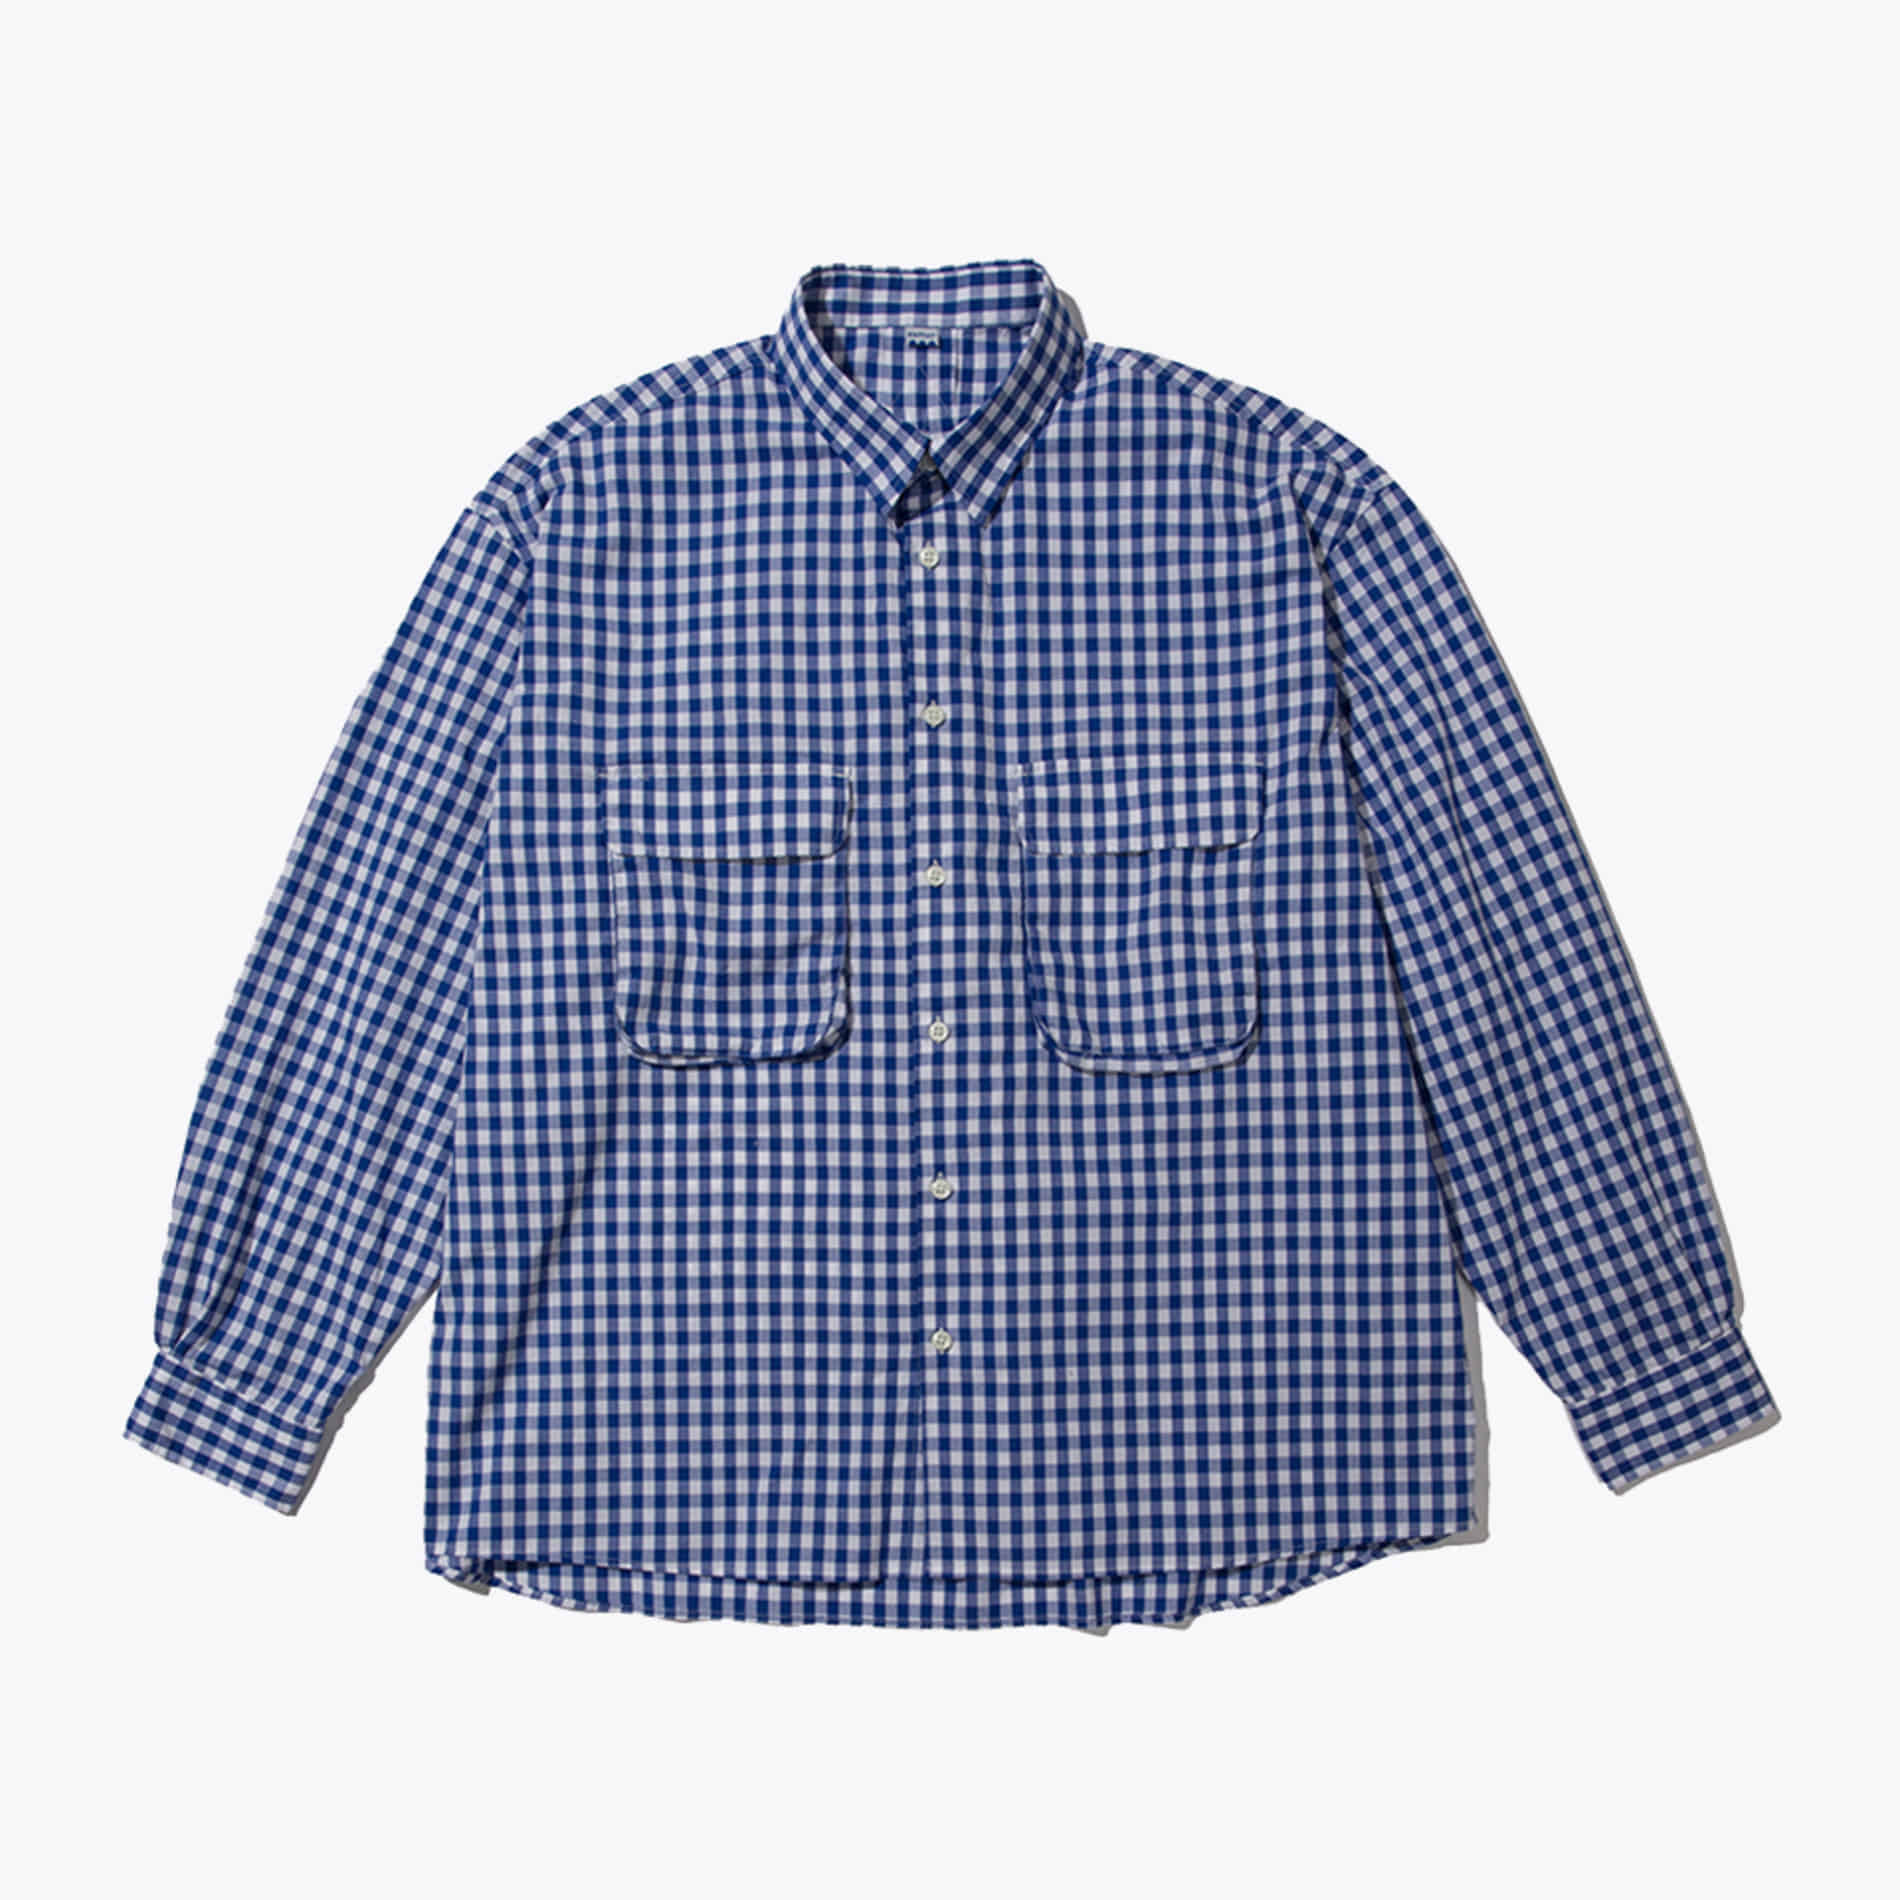 GINGHAM WIDE SHIRT (WHITE/BLUE)